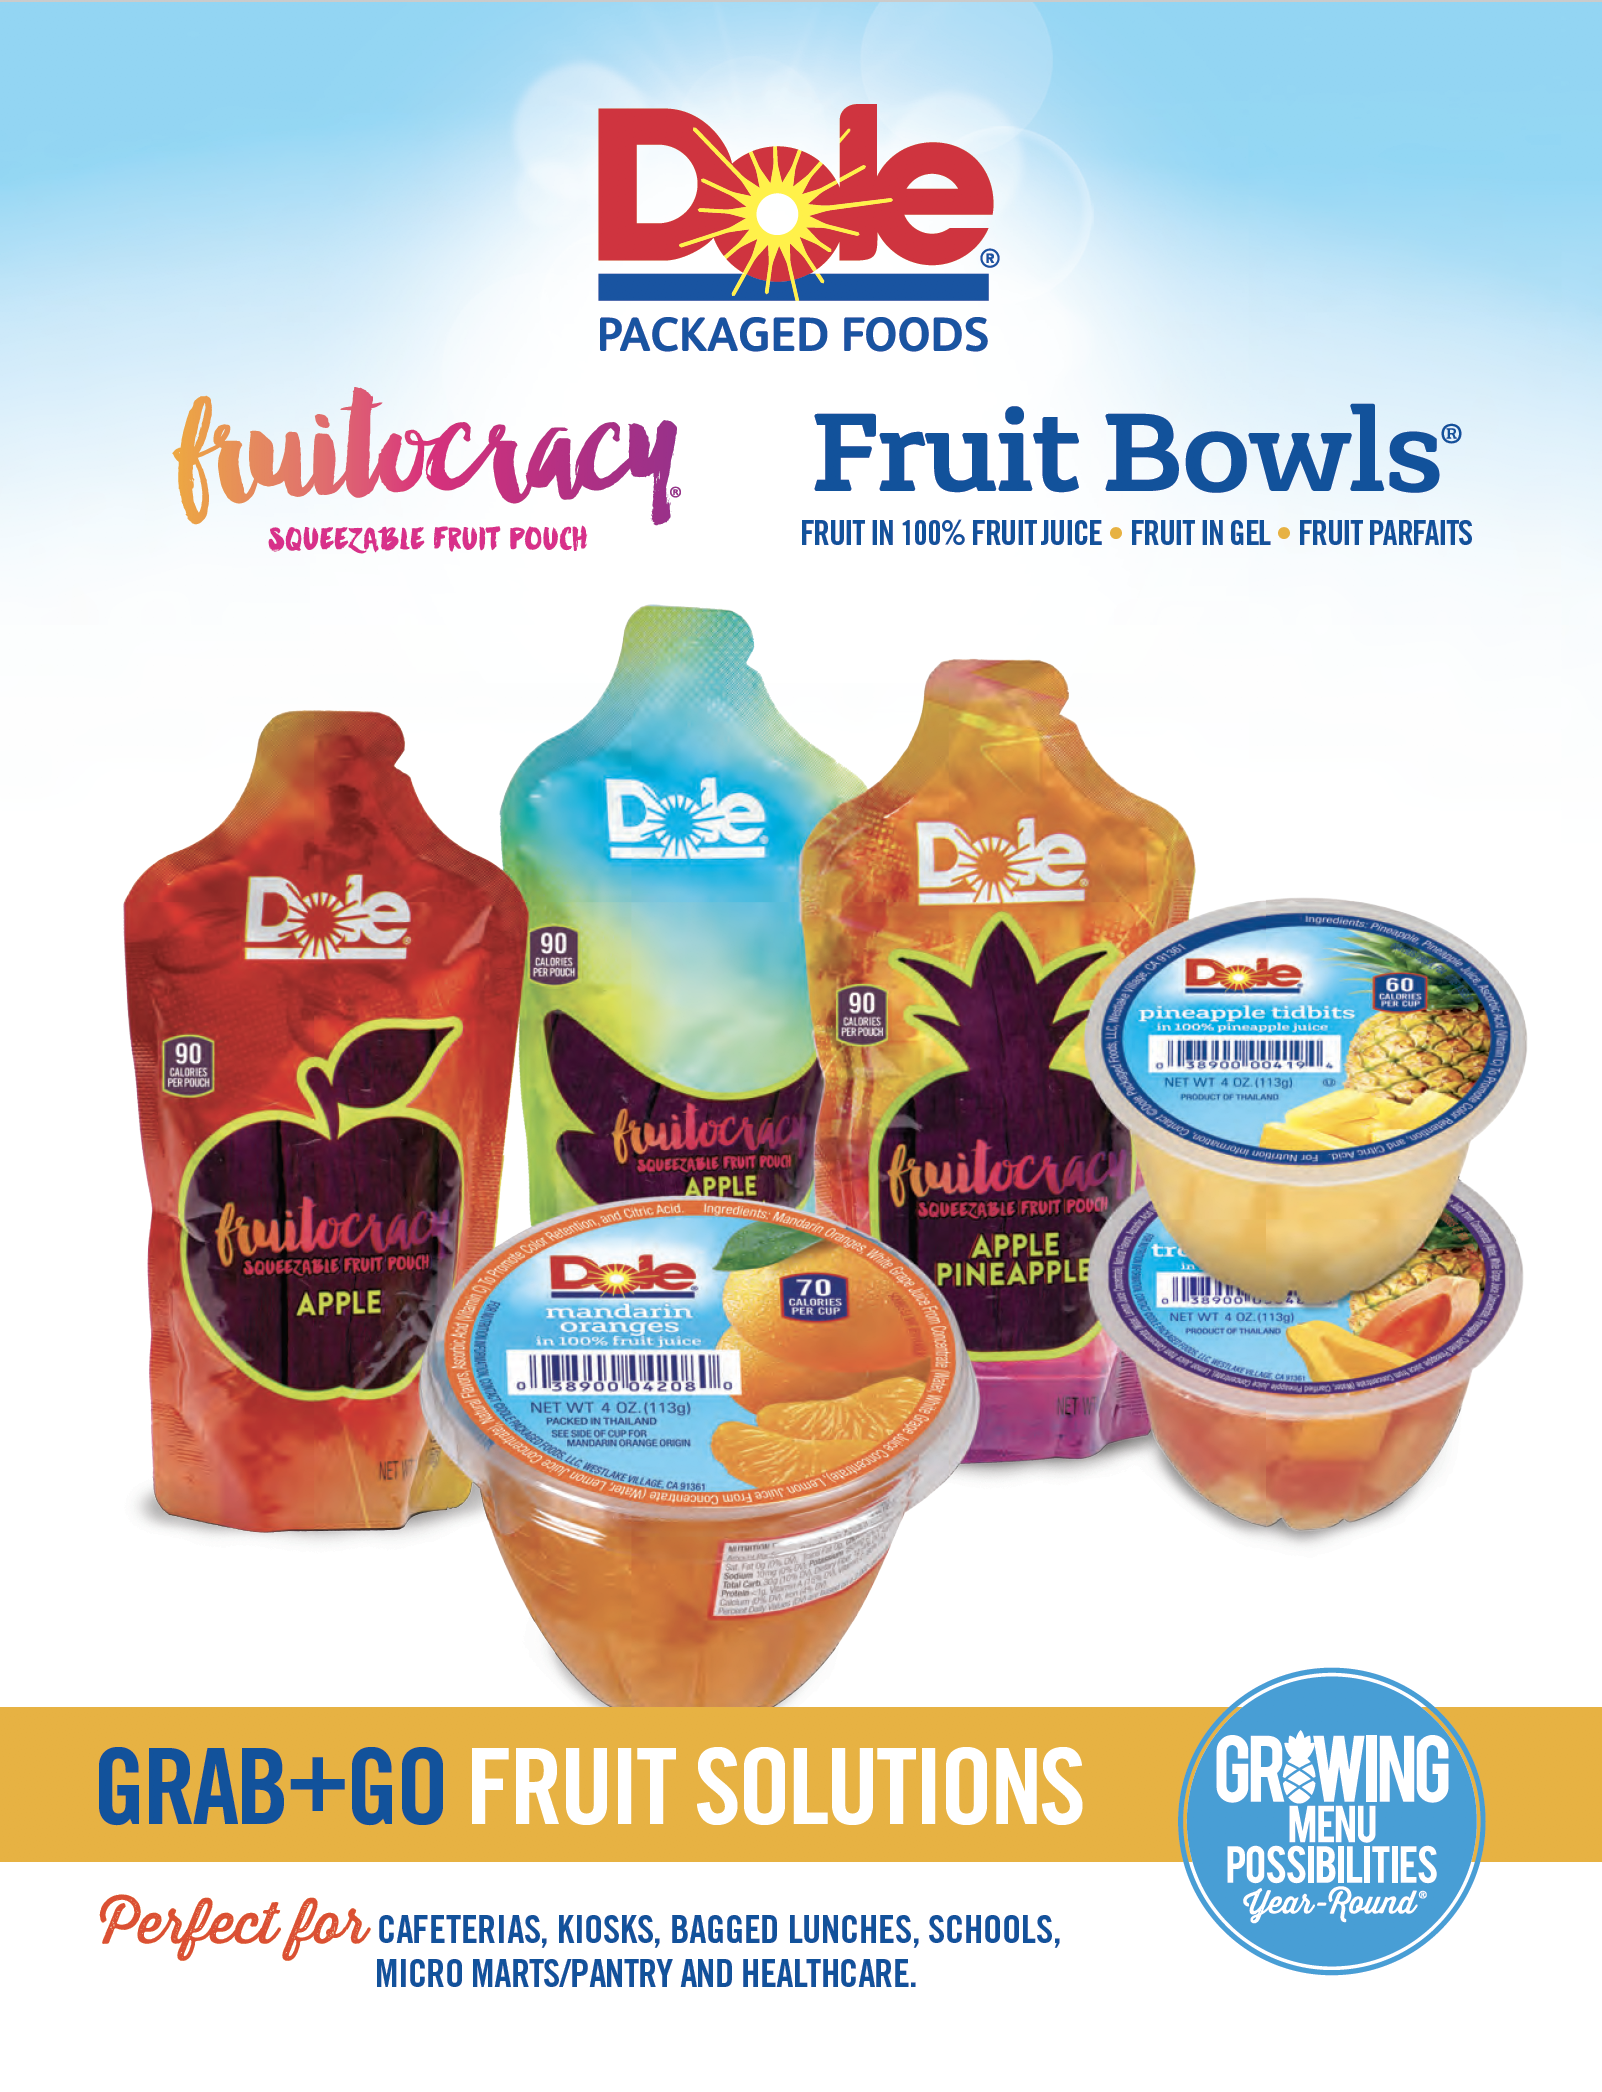 Fruit bowls and fruitocracy